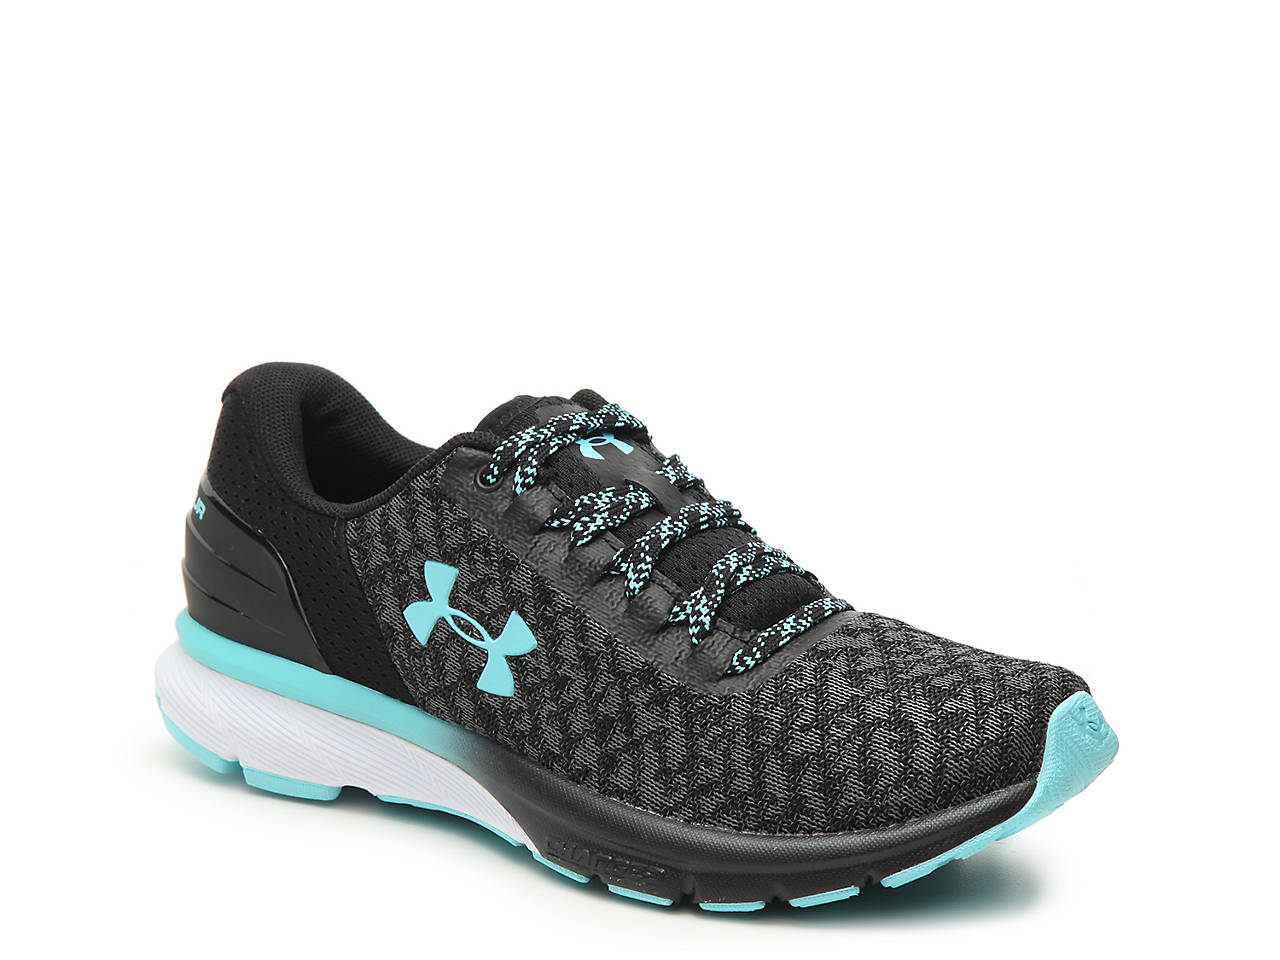 Under Armour Charged Escape 2 Lightweight Running Shoe - Women s ... cab268aa34